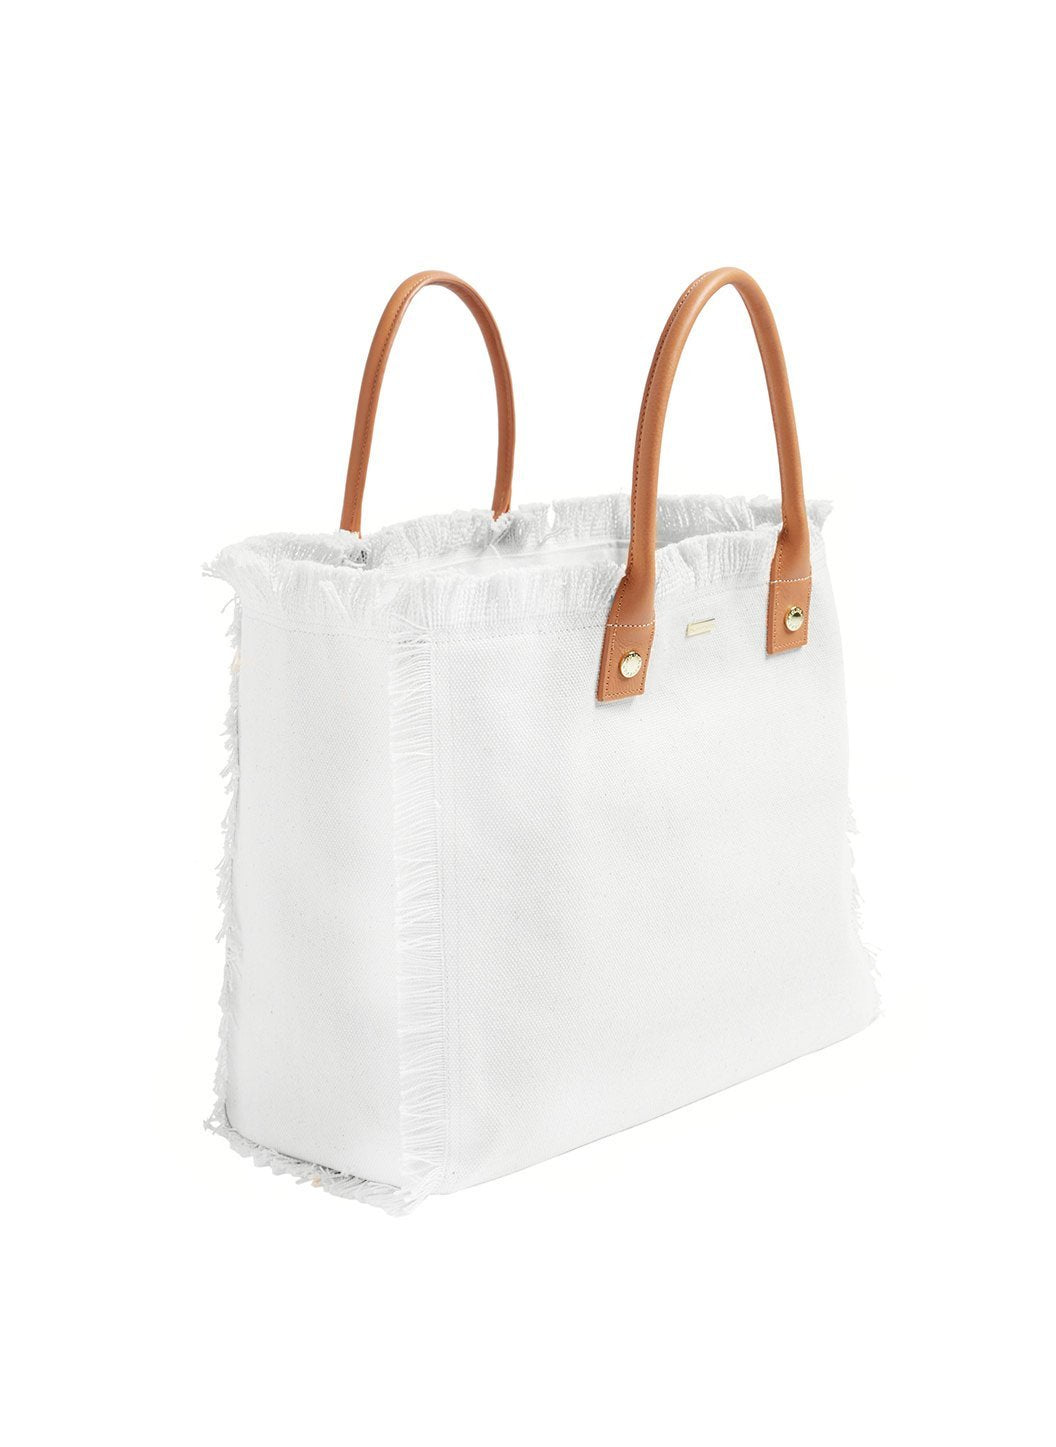 cap ferrat large beach tote white 2 2019